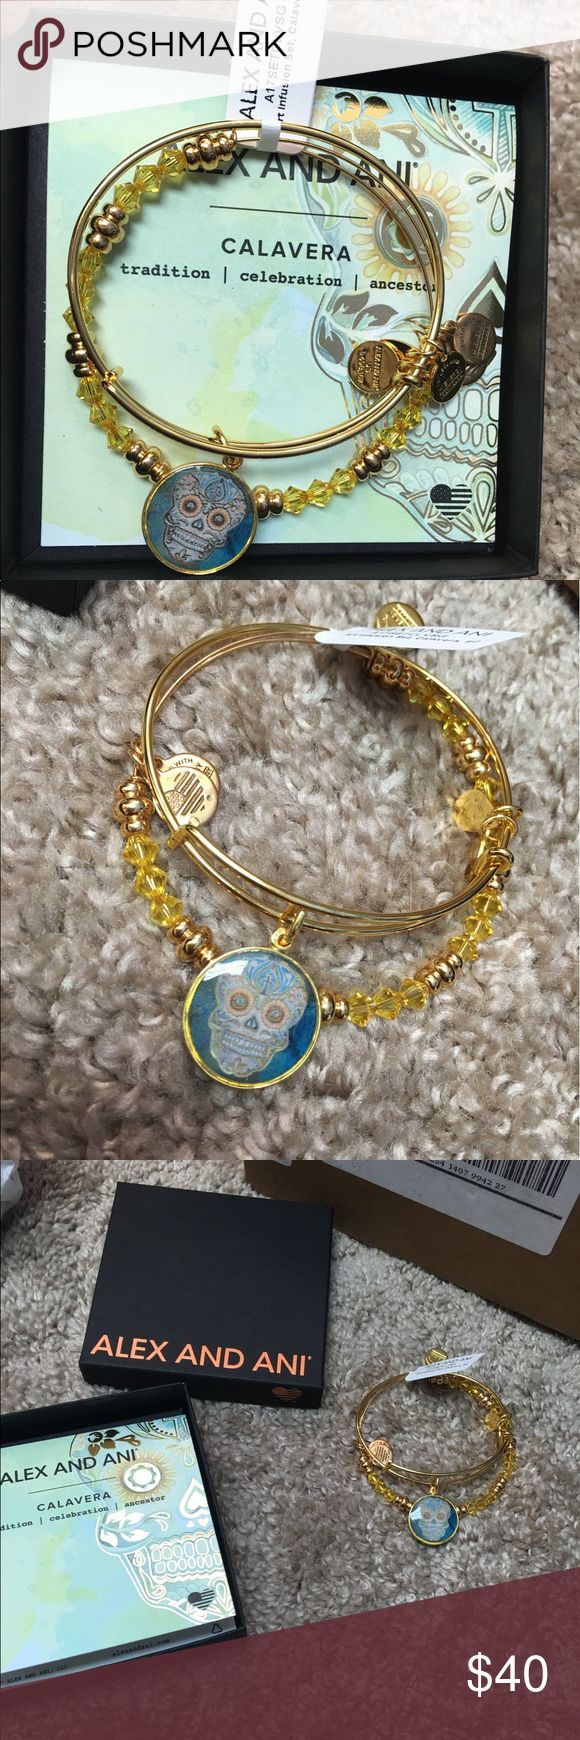 Alex and ani calavera April 2017 bracelet Alex and ani calavera April 2017 exclusive bracelet. ******Never worn, out of the box with the scratches located on the back - it was a gift so I couldn't give it like that**** Alex & Ani Jewelry Bracelets